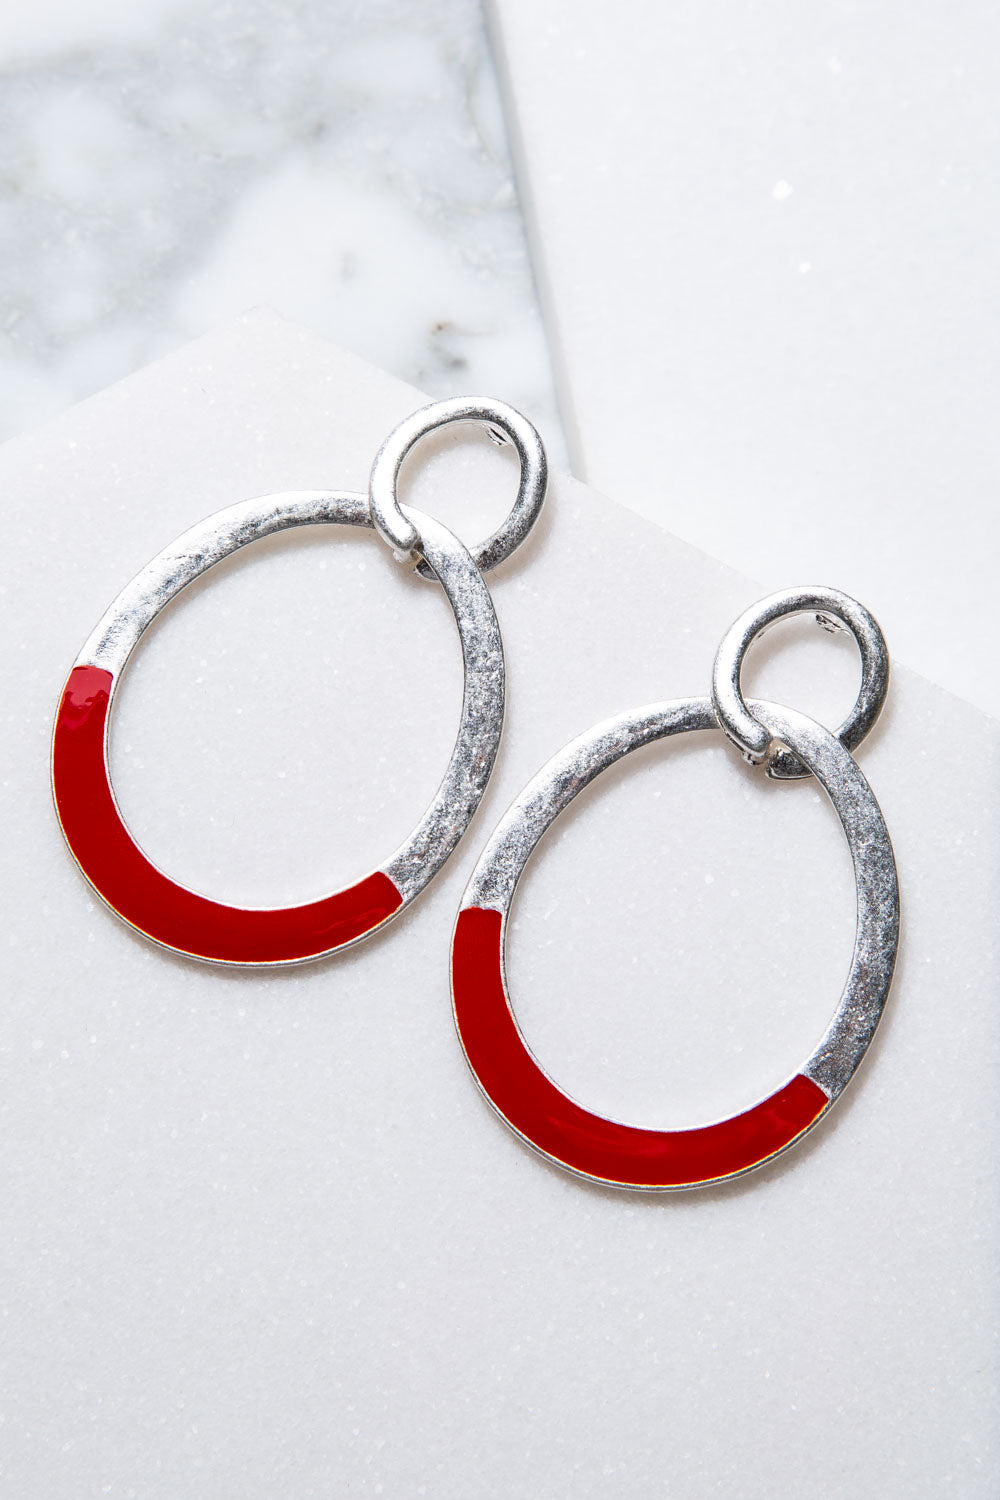 Type 4 Red Alert Earrings